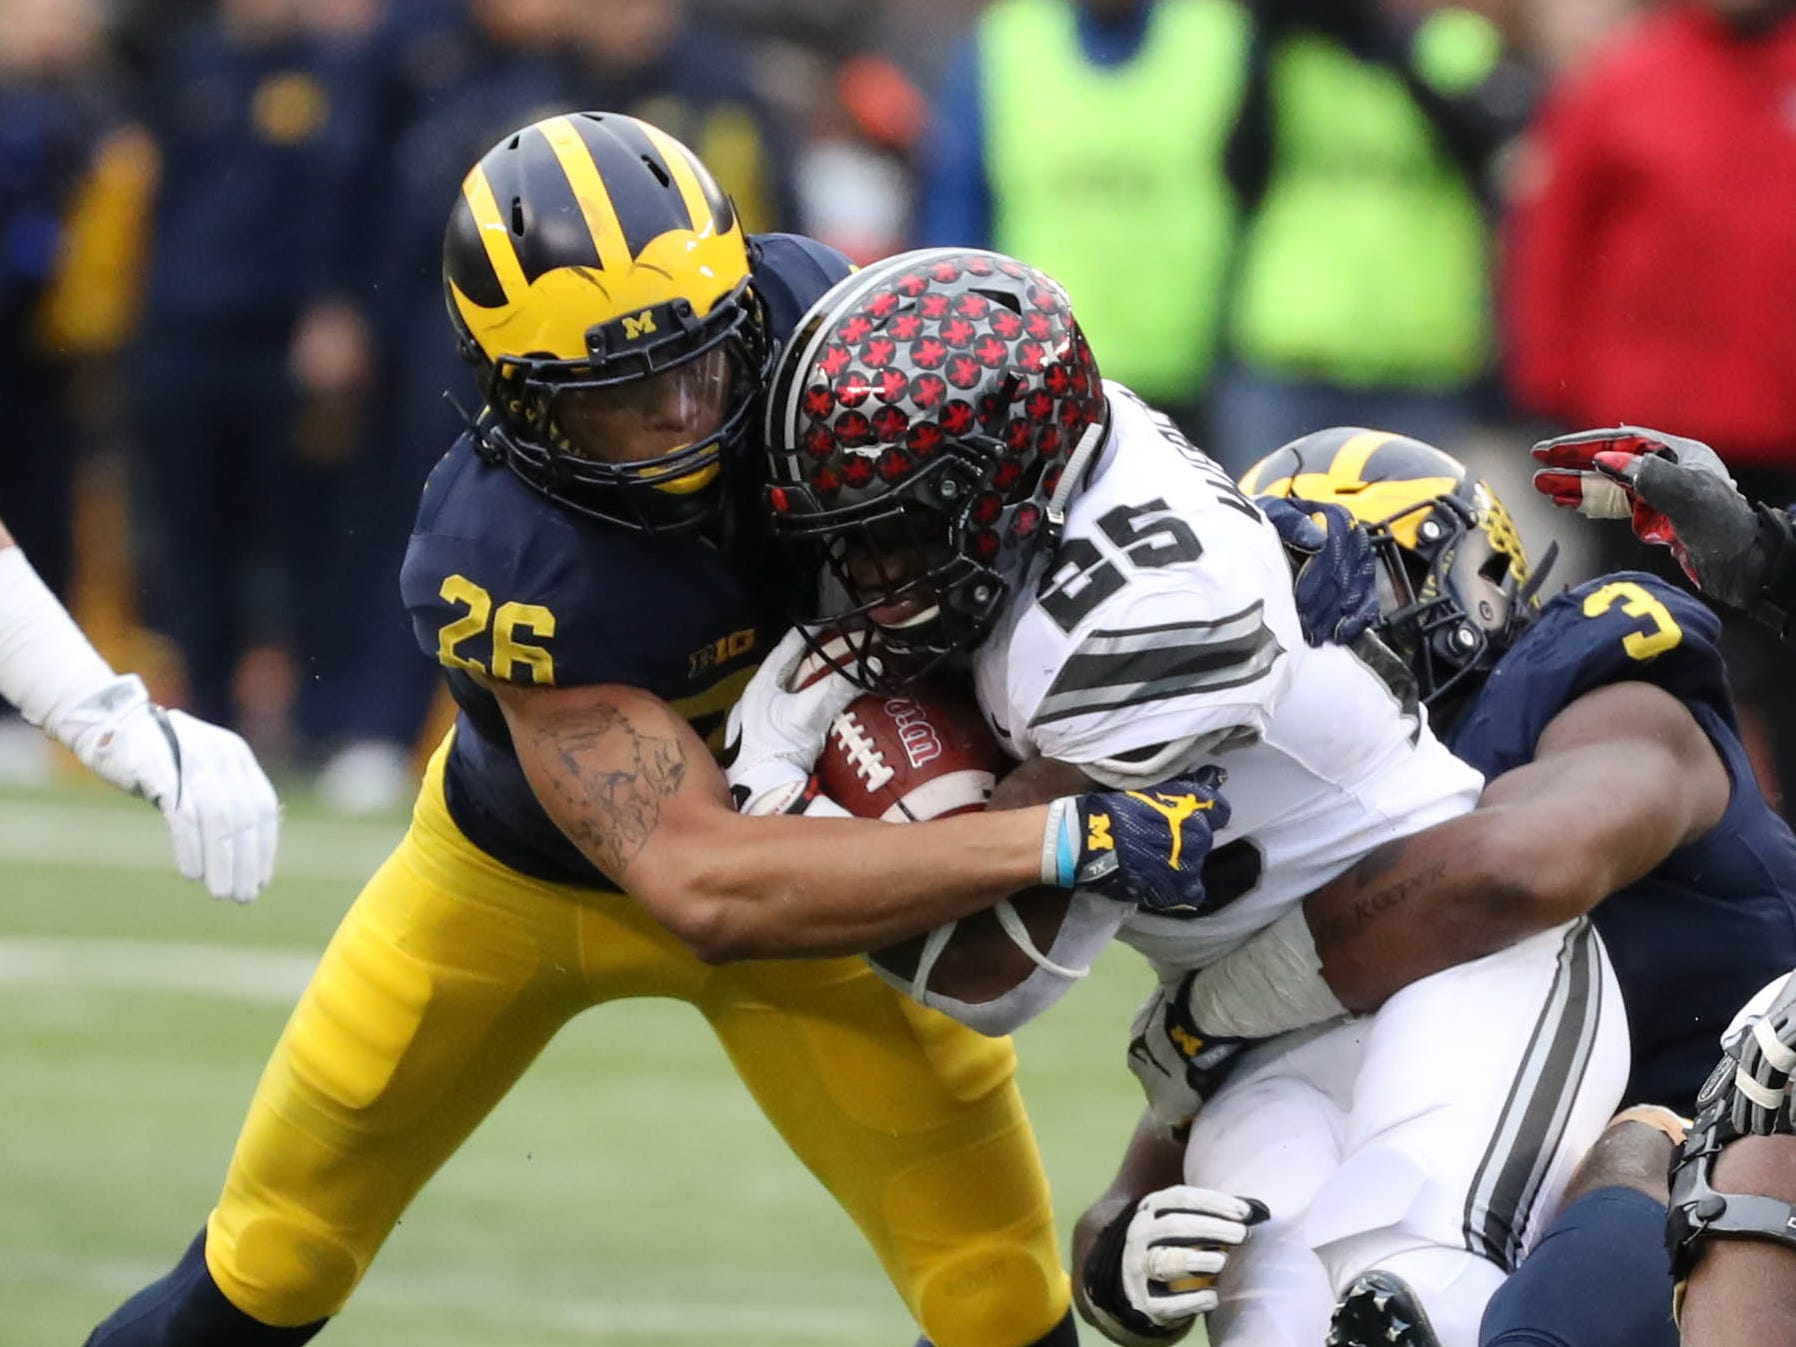 2. Michigan at Ohio State. When: Nov. 24. Where: Columbus, Ohio. The buzz: Do we even need to explain our ranking on this one?